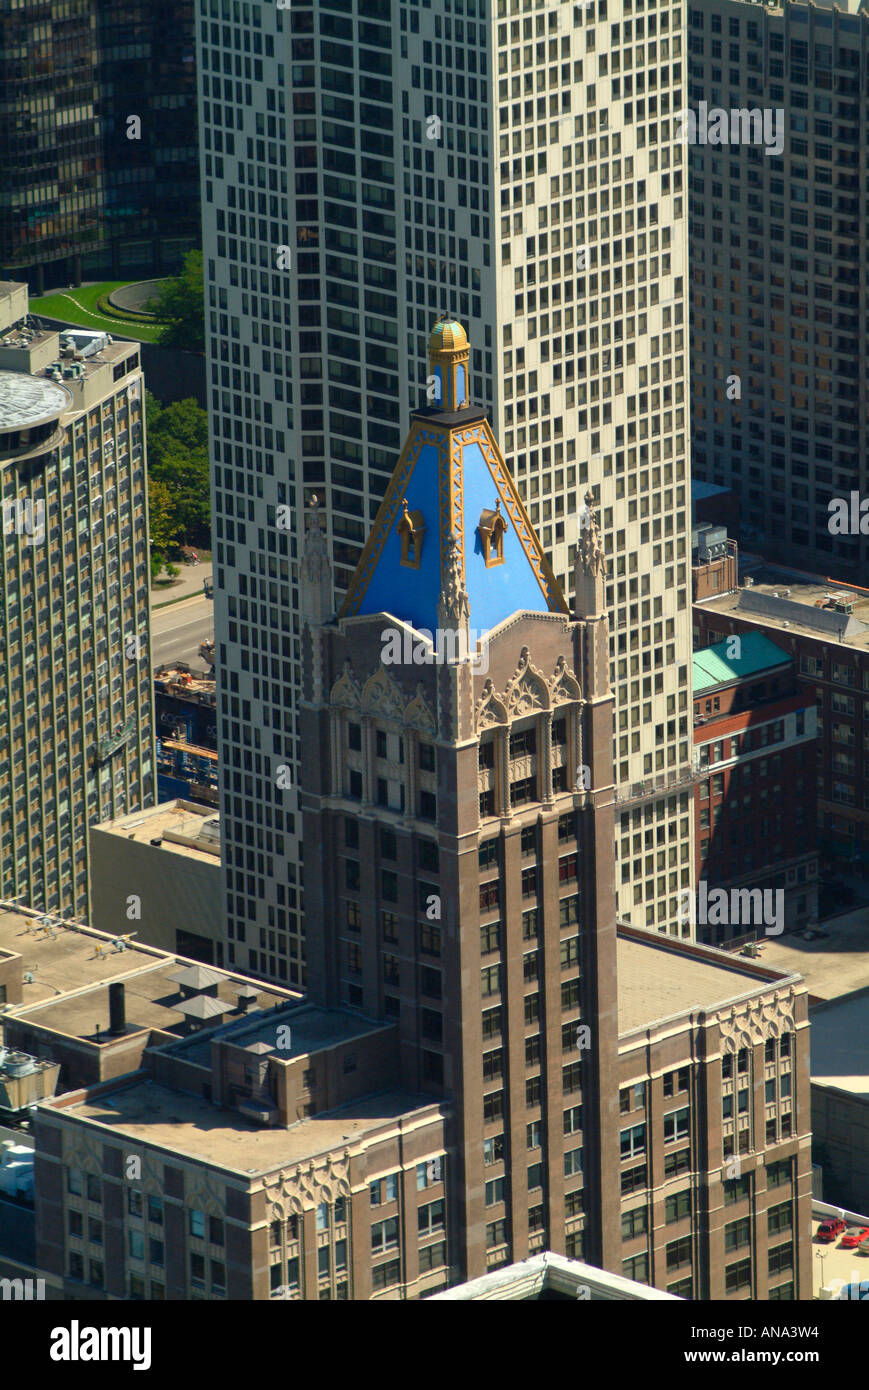 Exceptional Aerial View Of Former American Furniture Mart Building And Playboy  Headqurters From John Hancock Center In Chicago Illinois USA